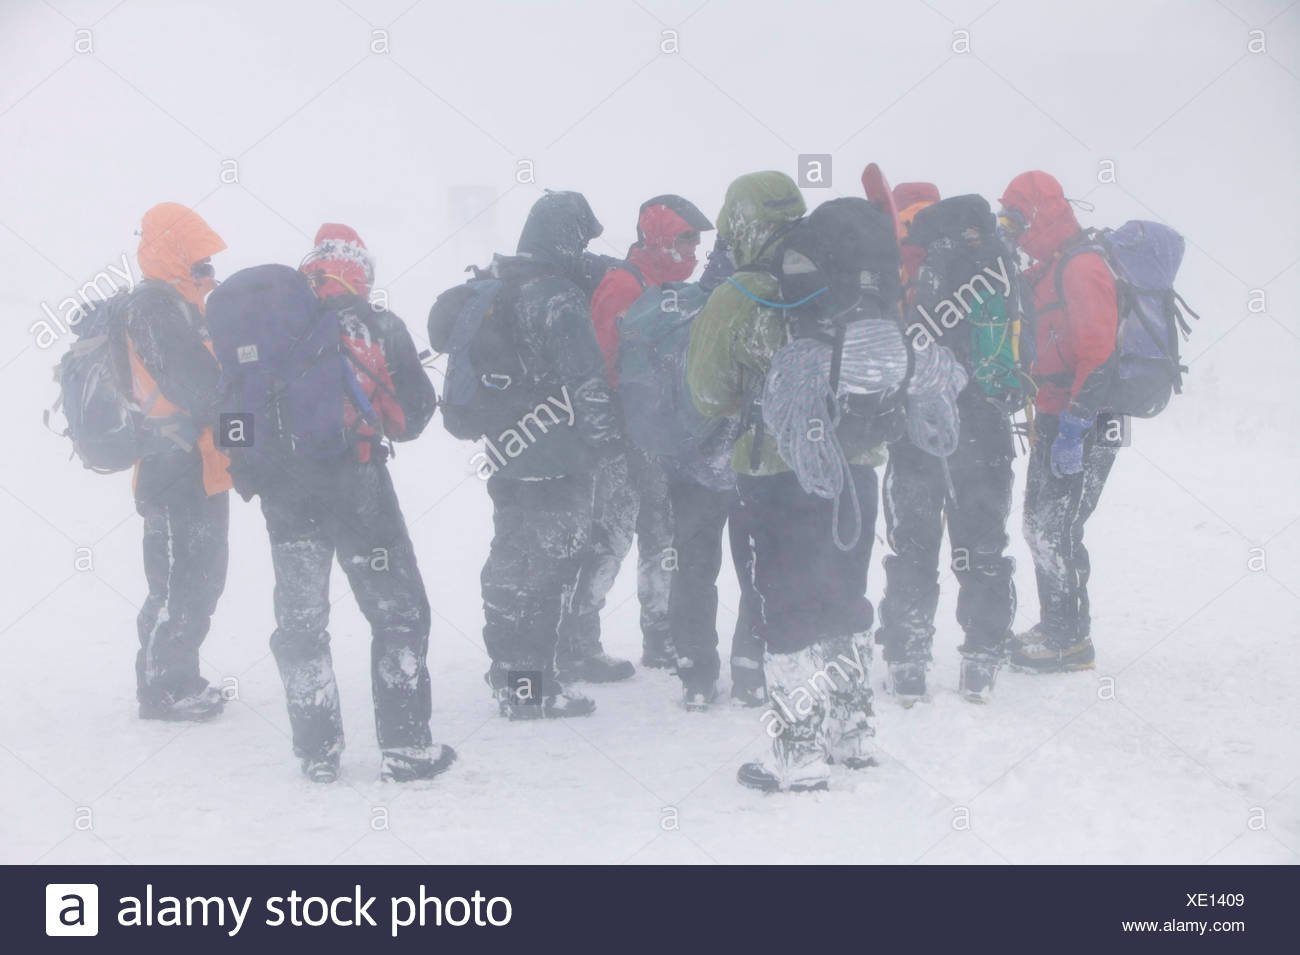 mountaineer's walking through extreme blizzard conditions in the Cairngorm mountains, Scotland, UK in heavy snow Stock Photo